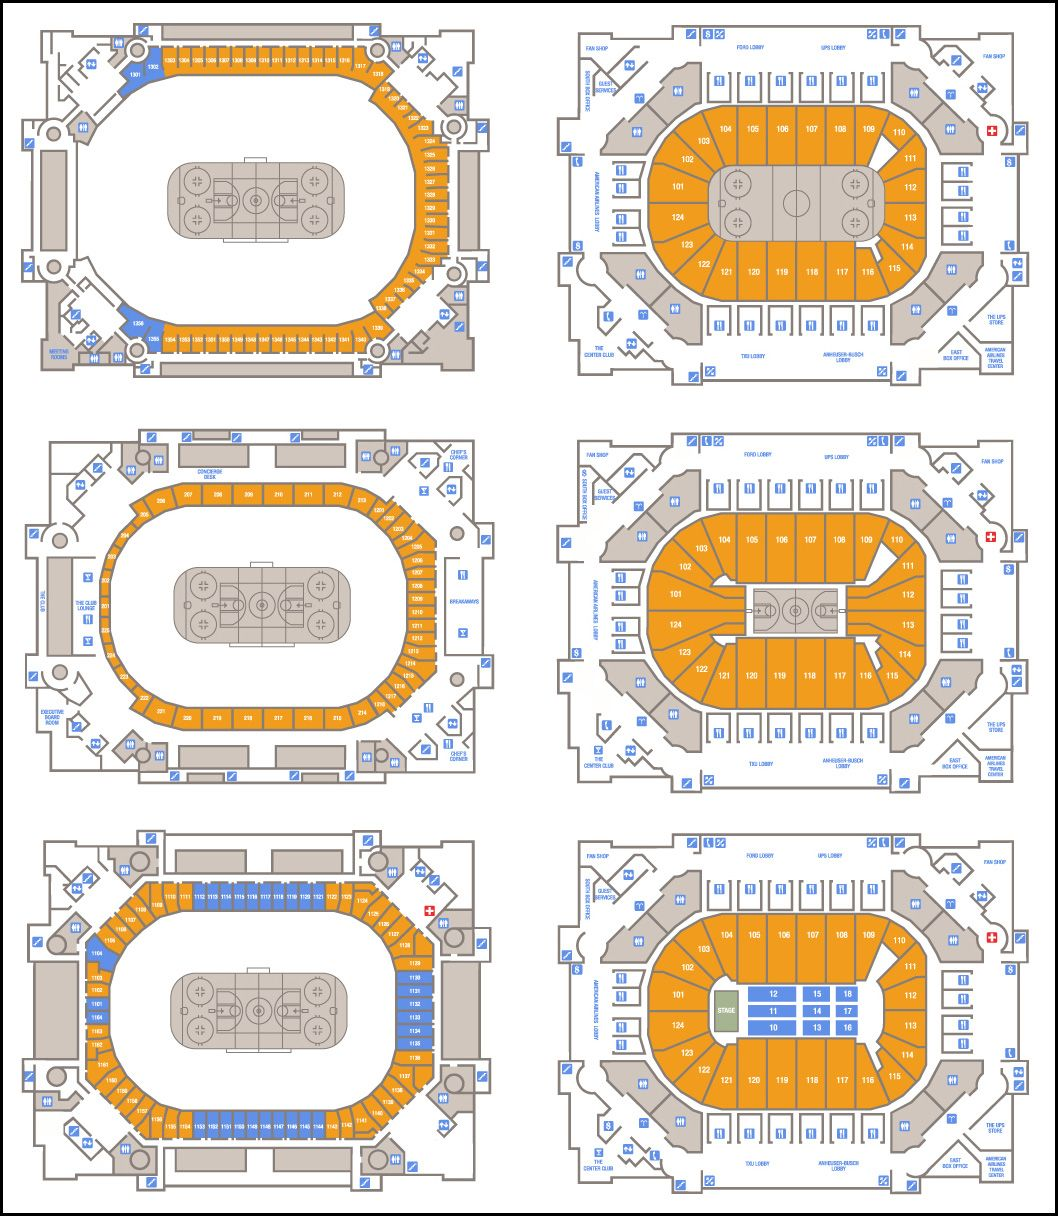 Floorplan And Seating Plan For American Airlines Center In Dallas Tx